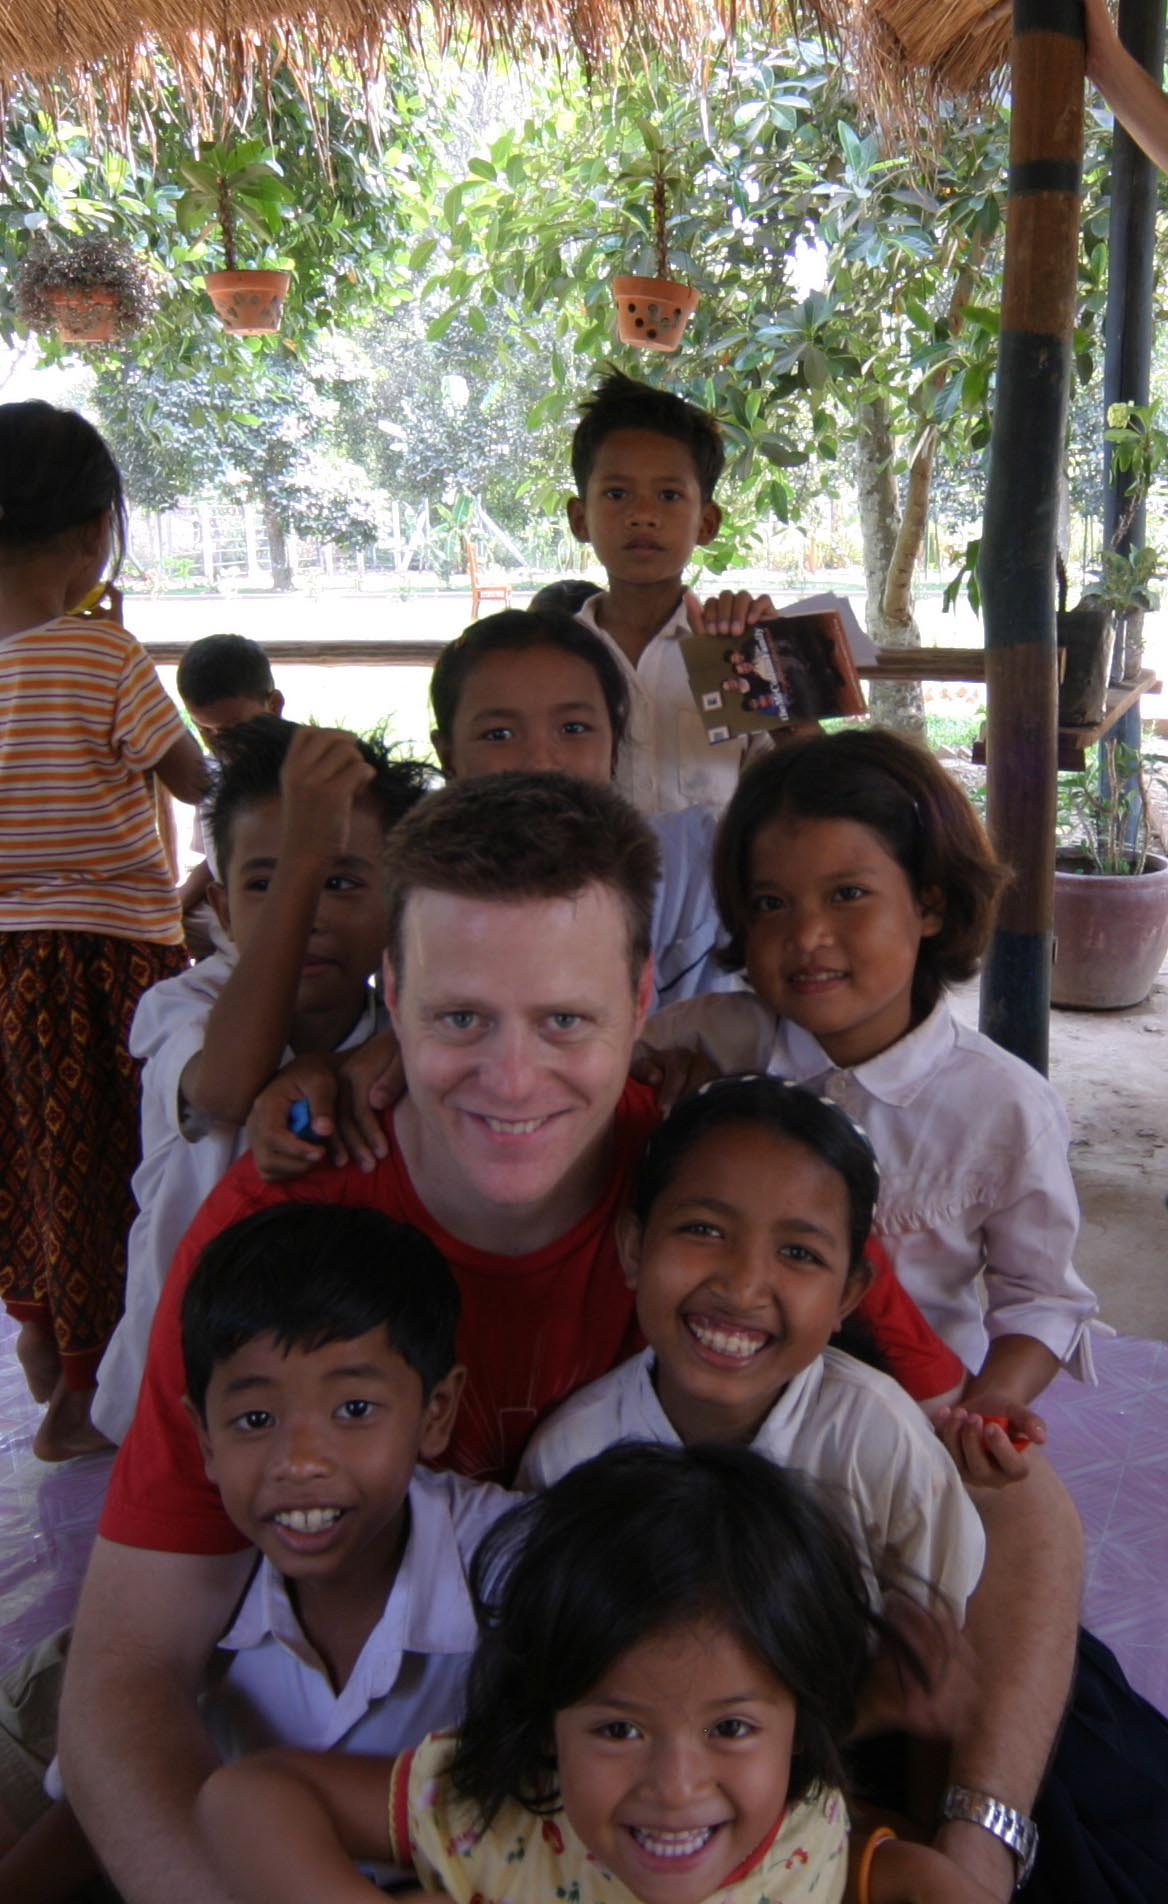 Me in February 2005 with the kids from our first home in Phnom Penh, the one that would eventually be known as  Prek Eng 1.